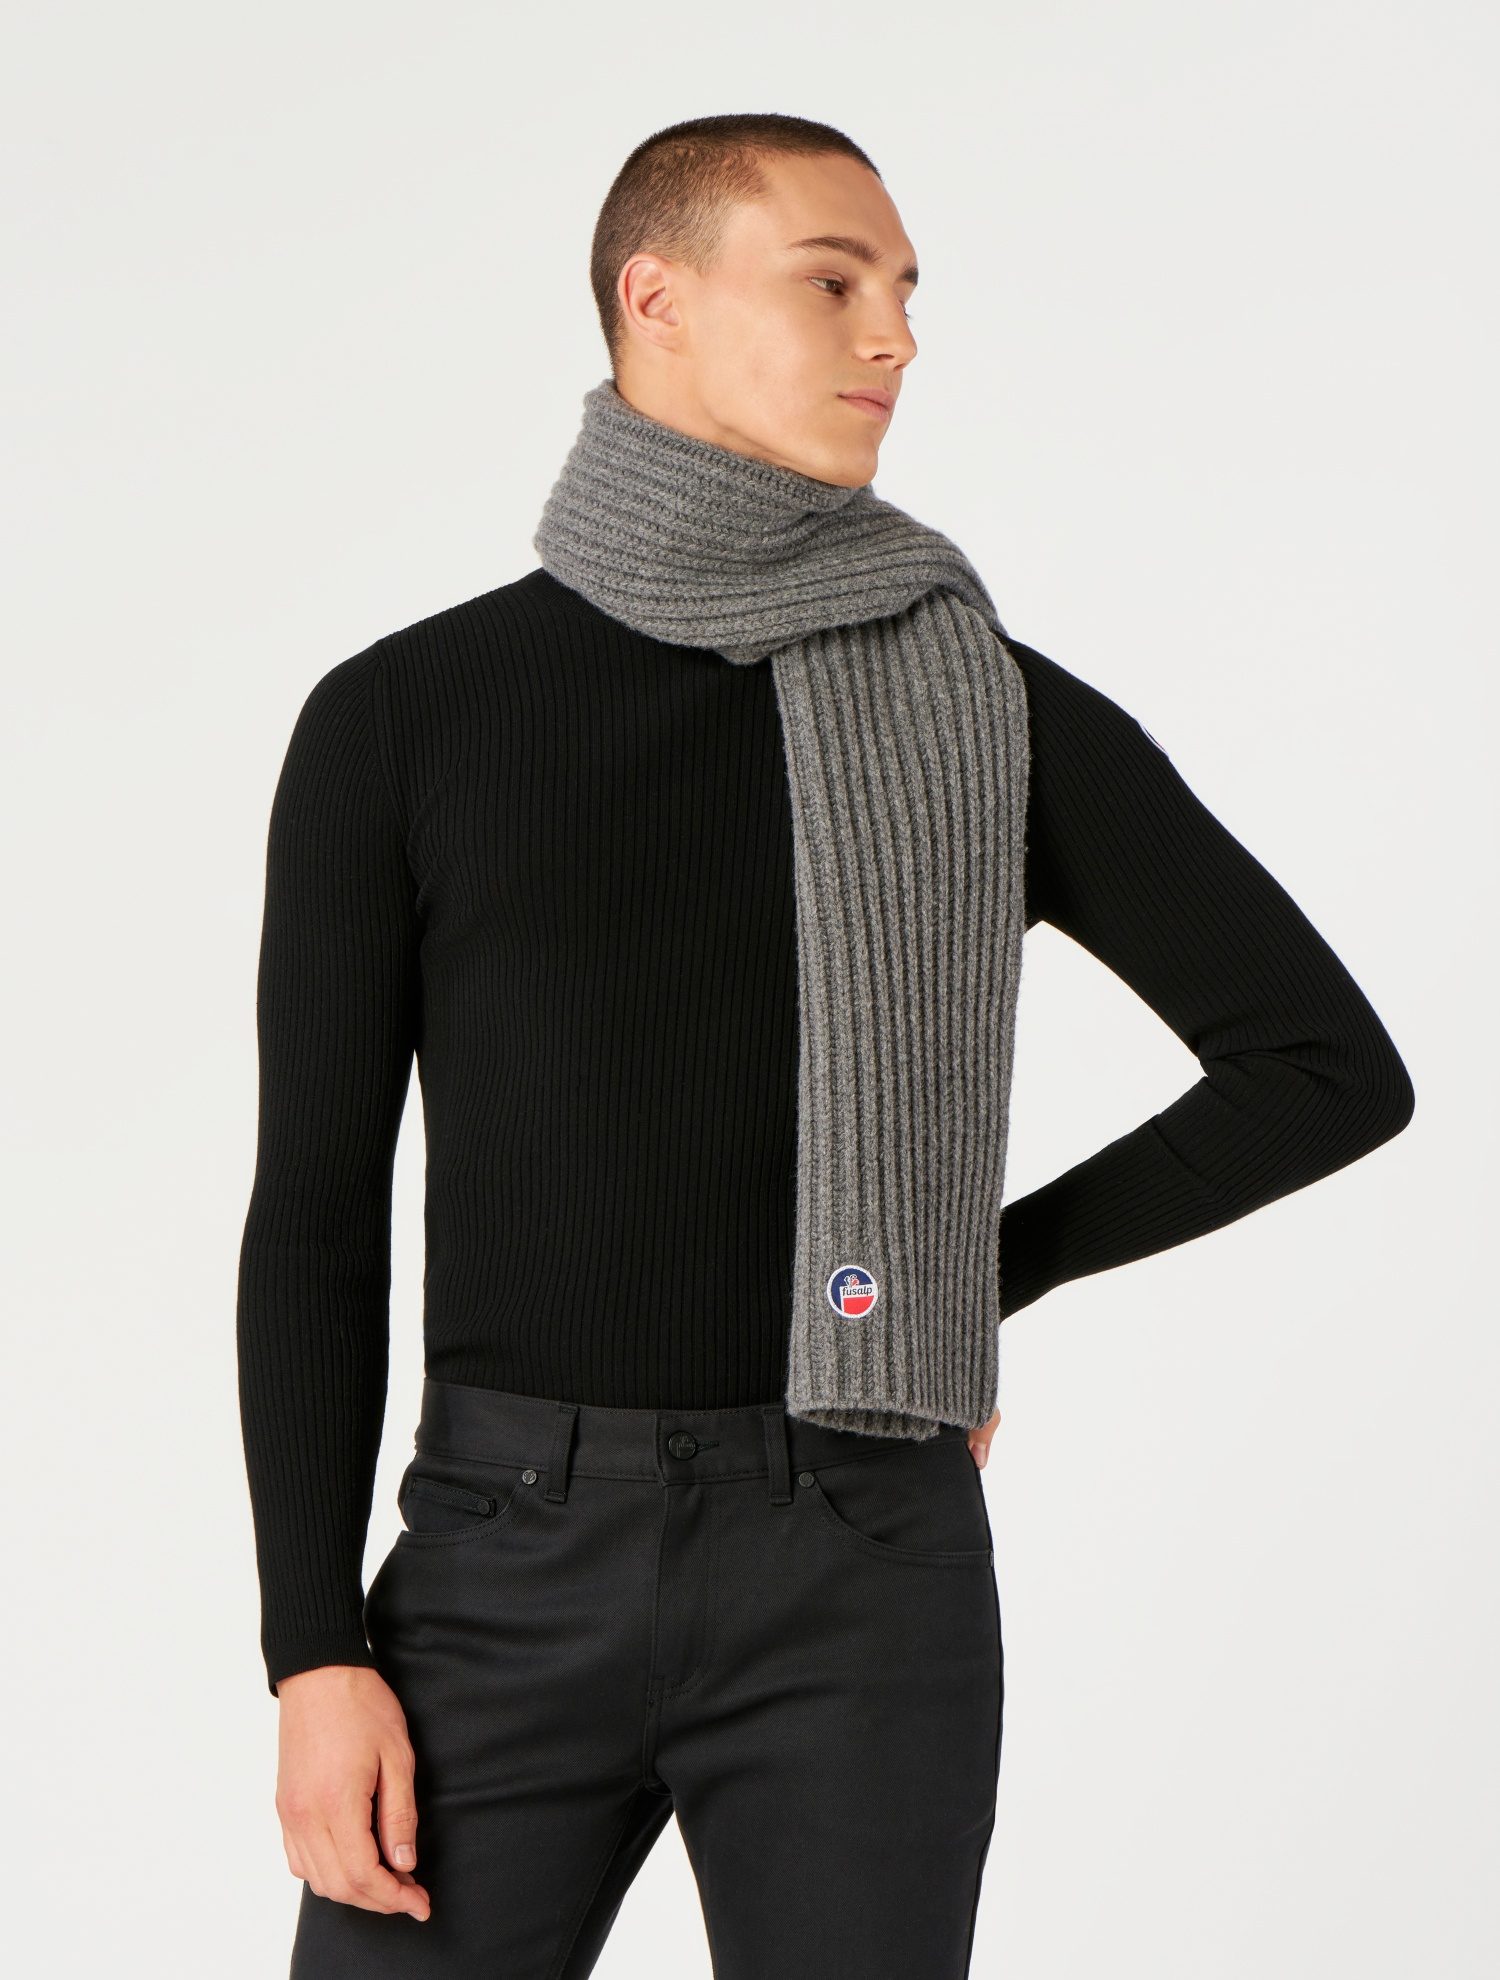 CEILLAC SWEATER